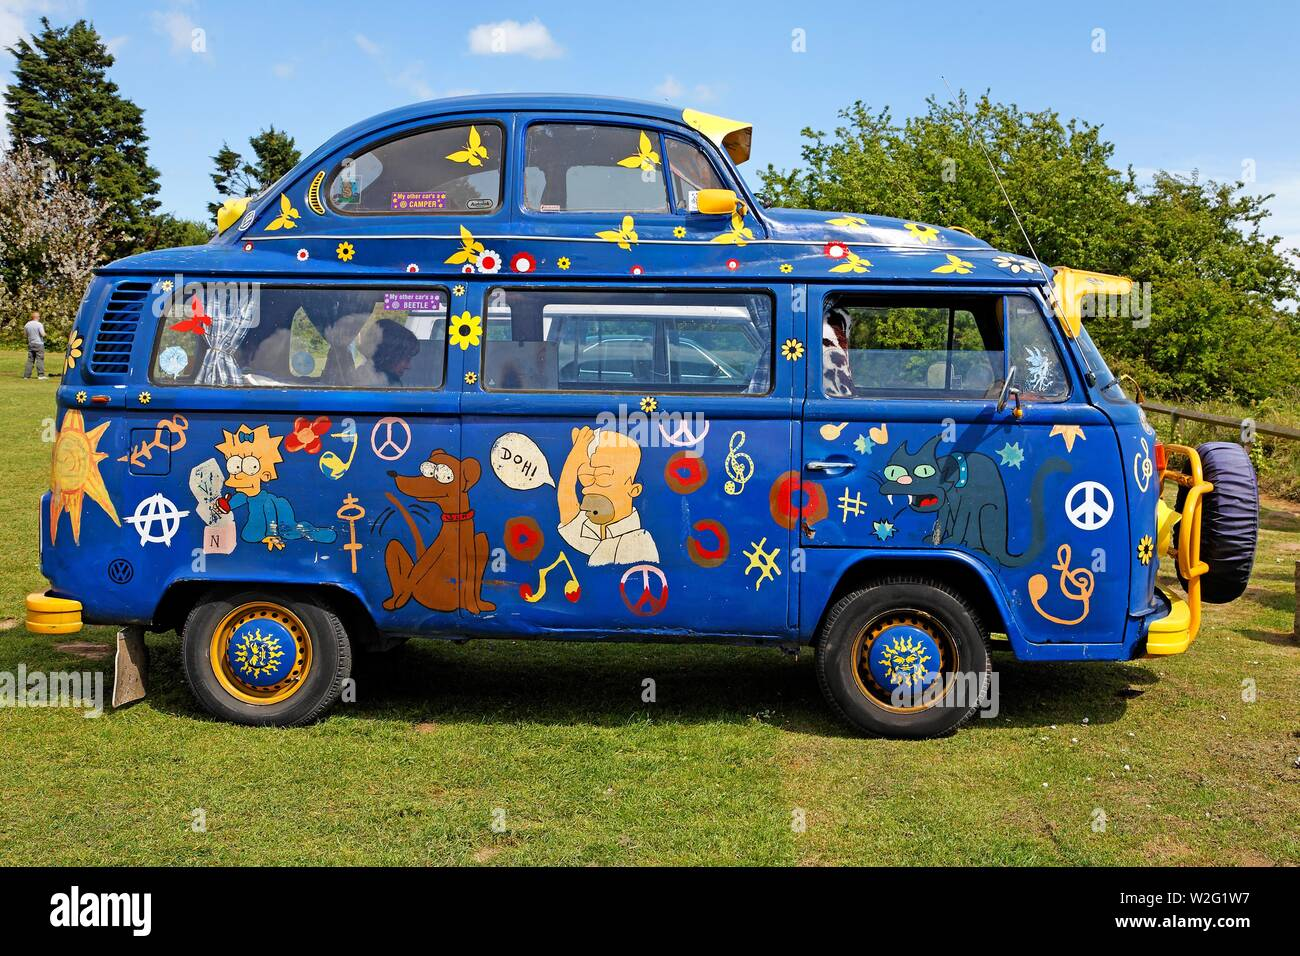 Old Vw Bus Vw T2 Bulli With Vw Beetle As High Roof Painted With Simpson Comic Figures Kent Great Britain Stock Photo Alamy